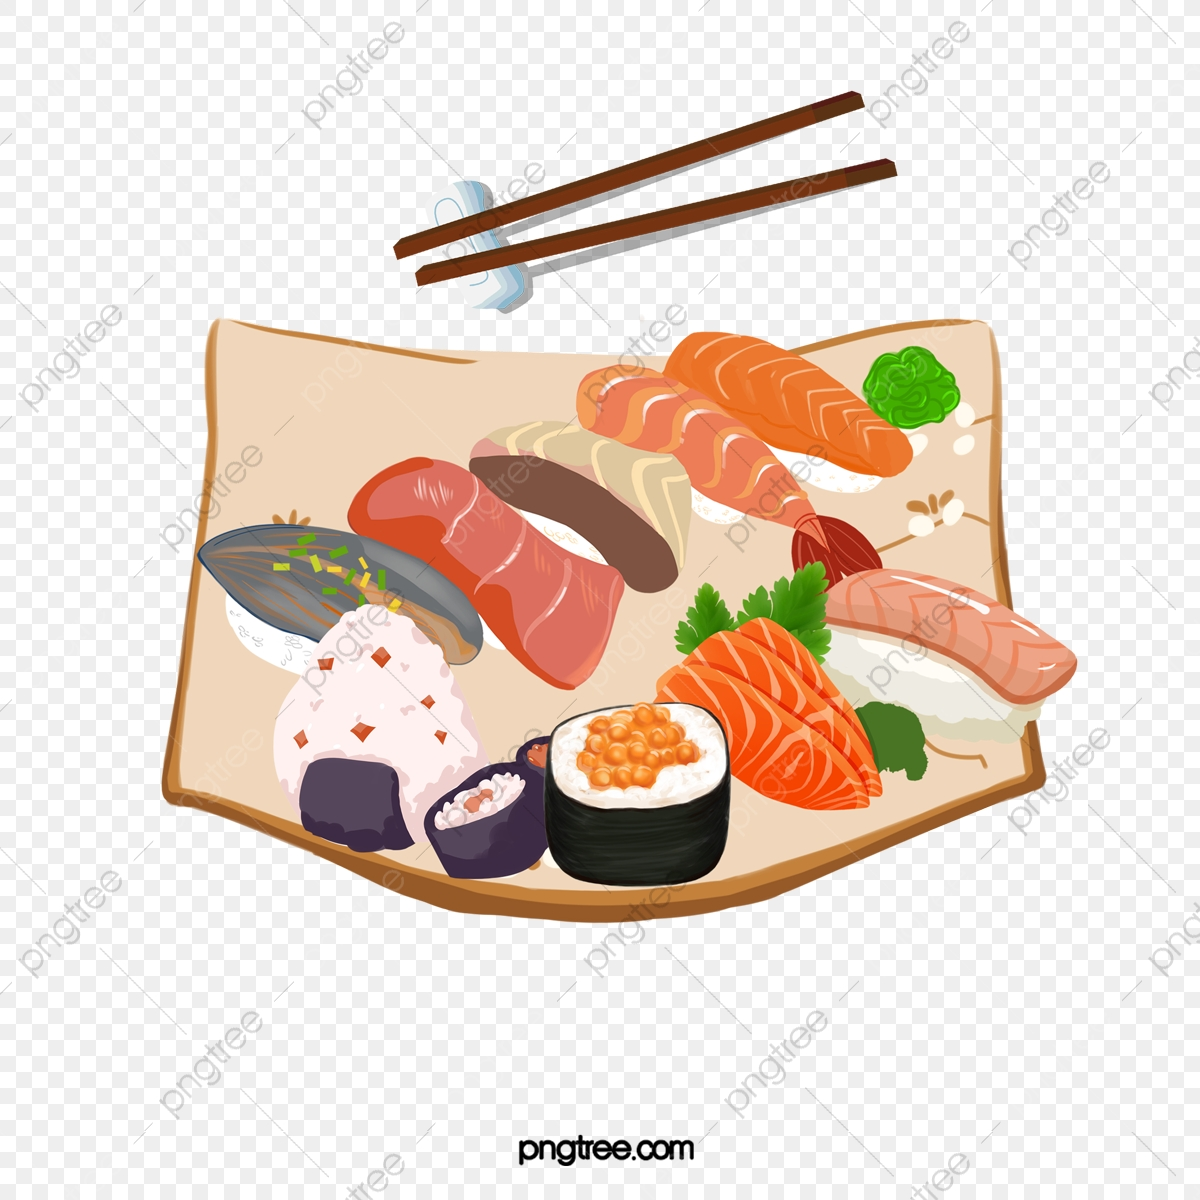 Free Sushi Cliparts, Download Free Clip Art, Free Clip Art on Clipart  Library